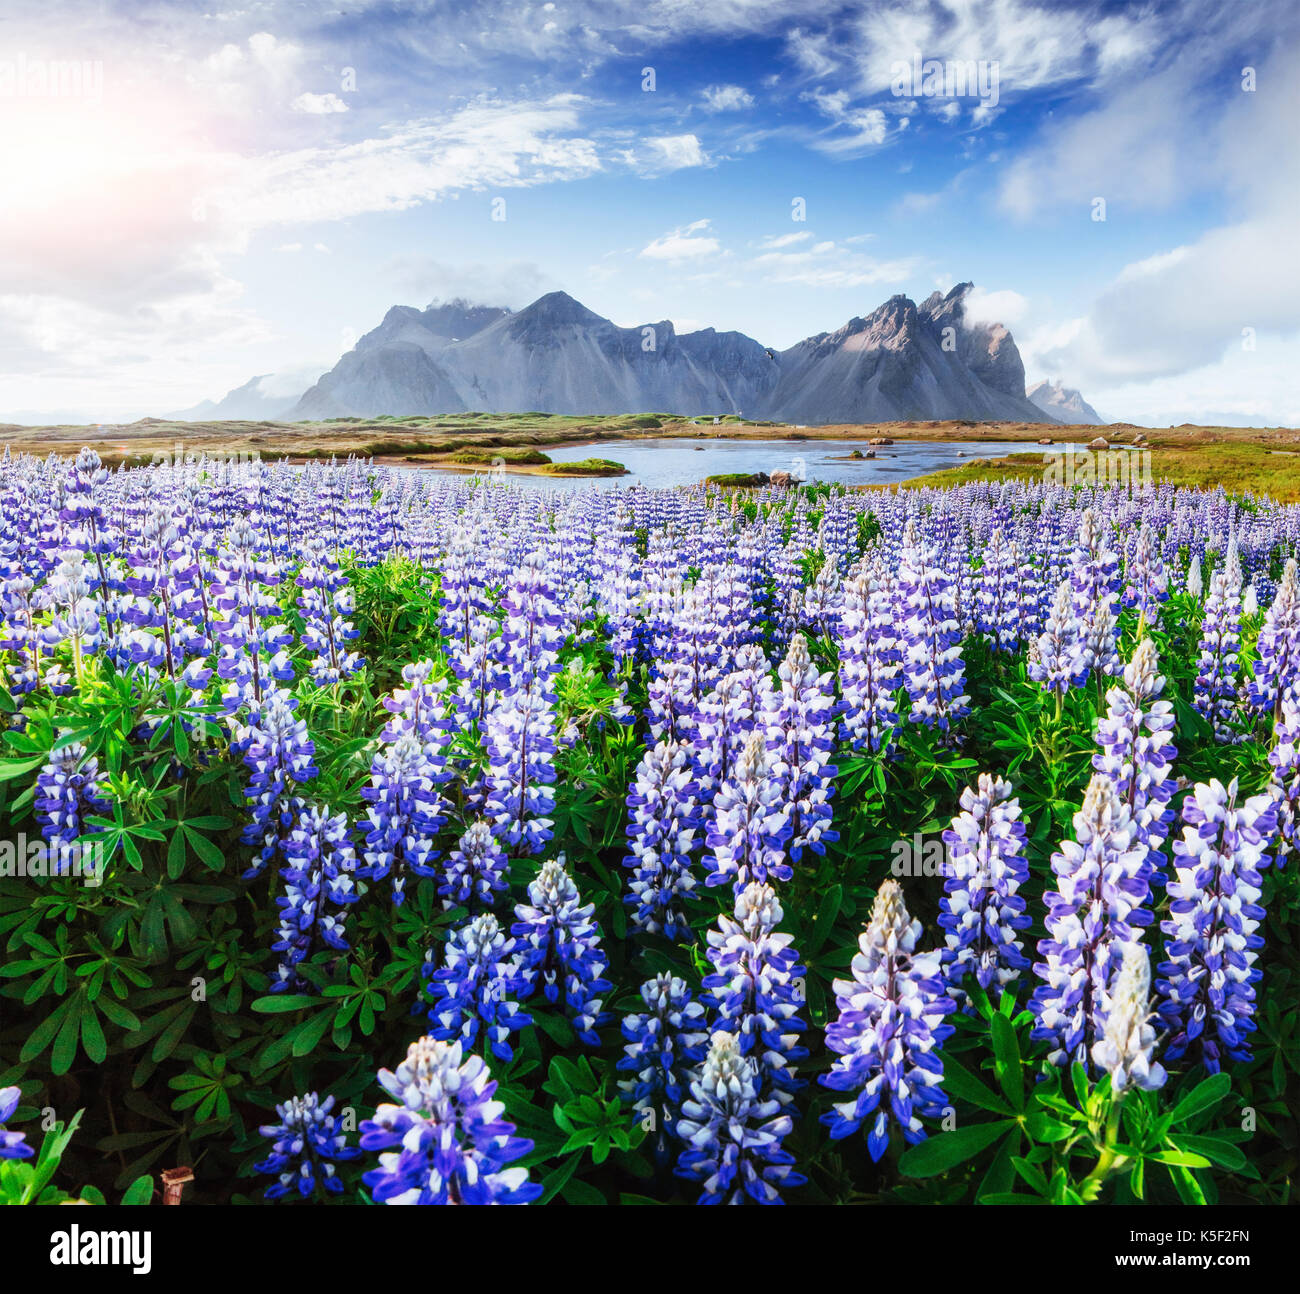 Picturesque views of the river and mountains in Iceland - Stock Image